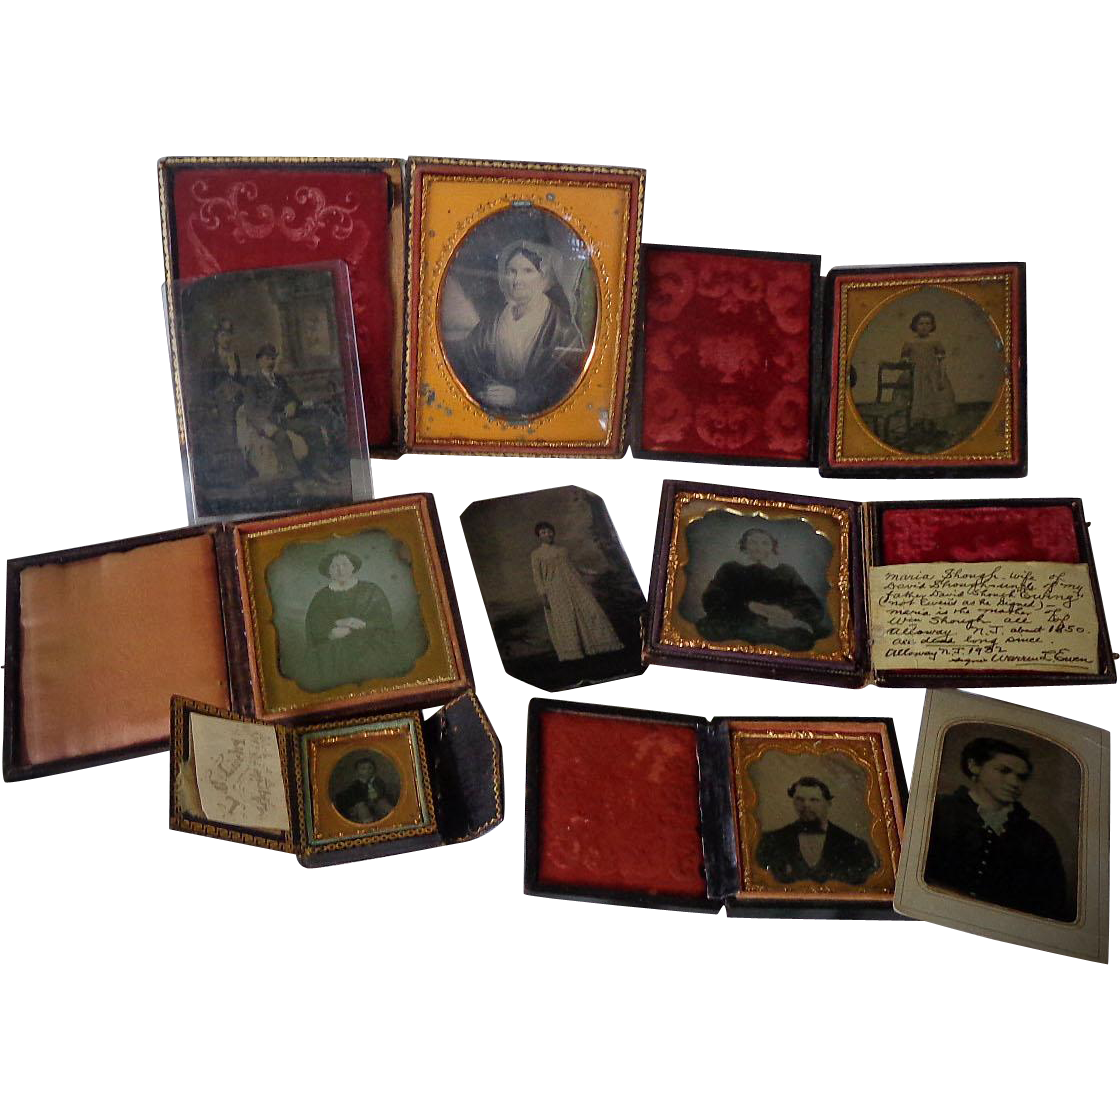 Horace Bundy Daguerreotype Photrographic Archive of David Slough Family Alloway,New Jersey and 114 Year Old Baby